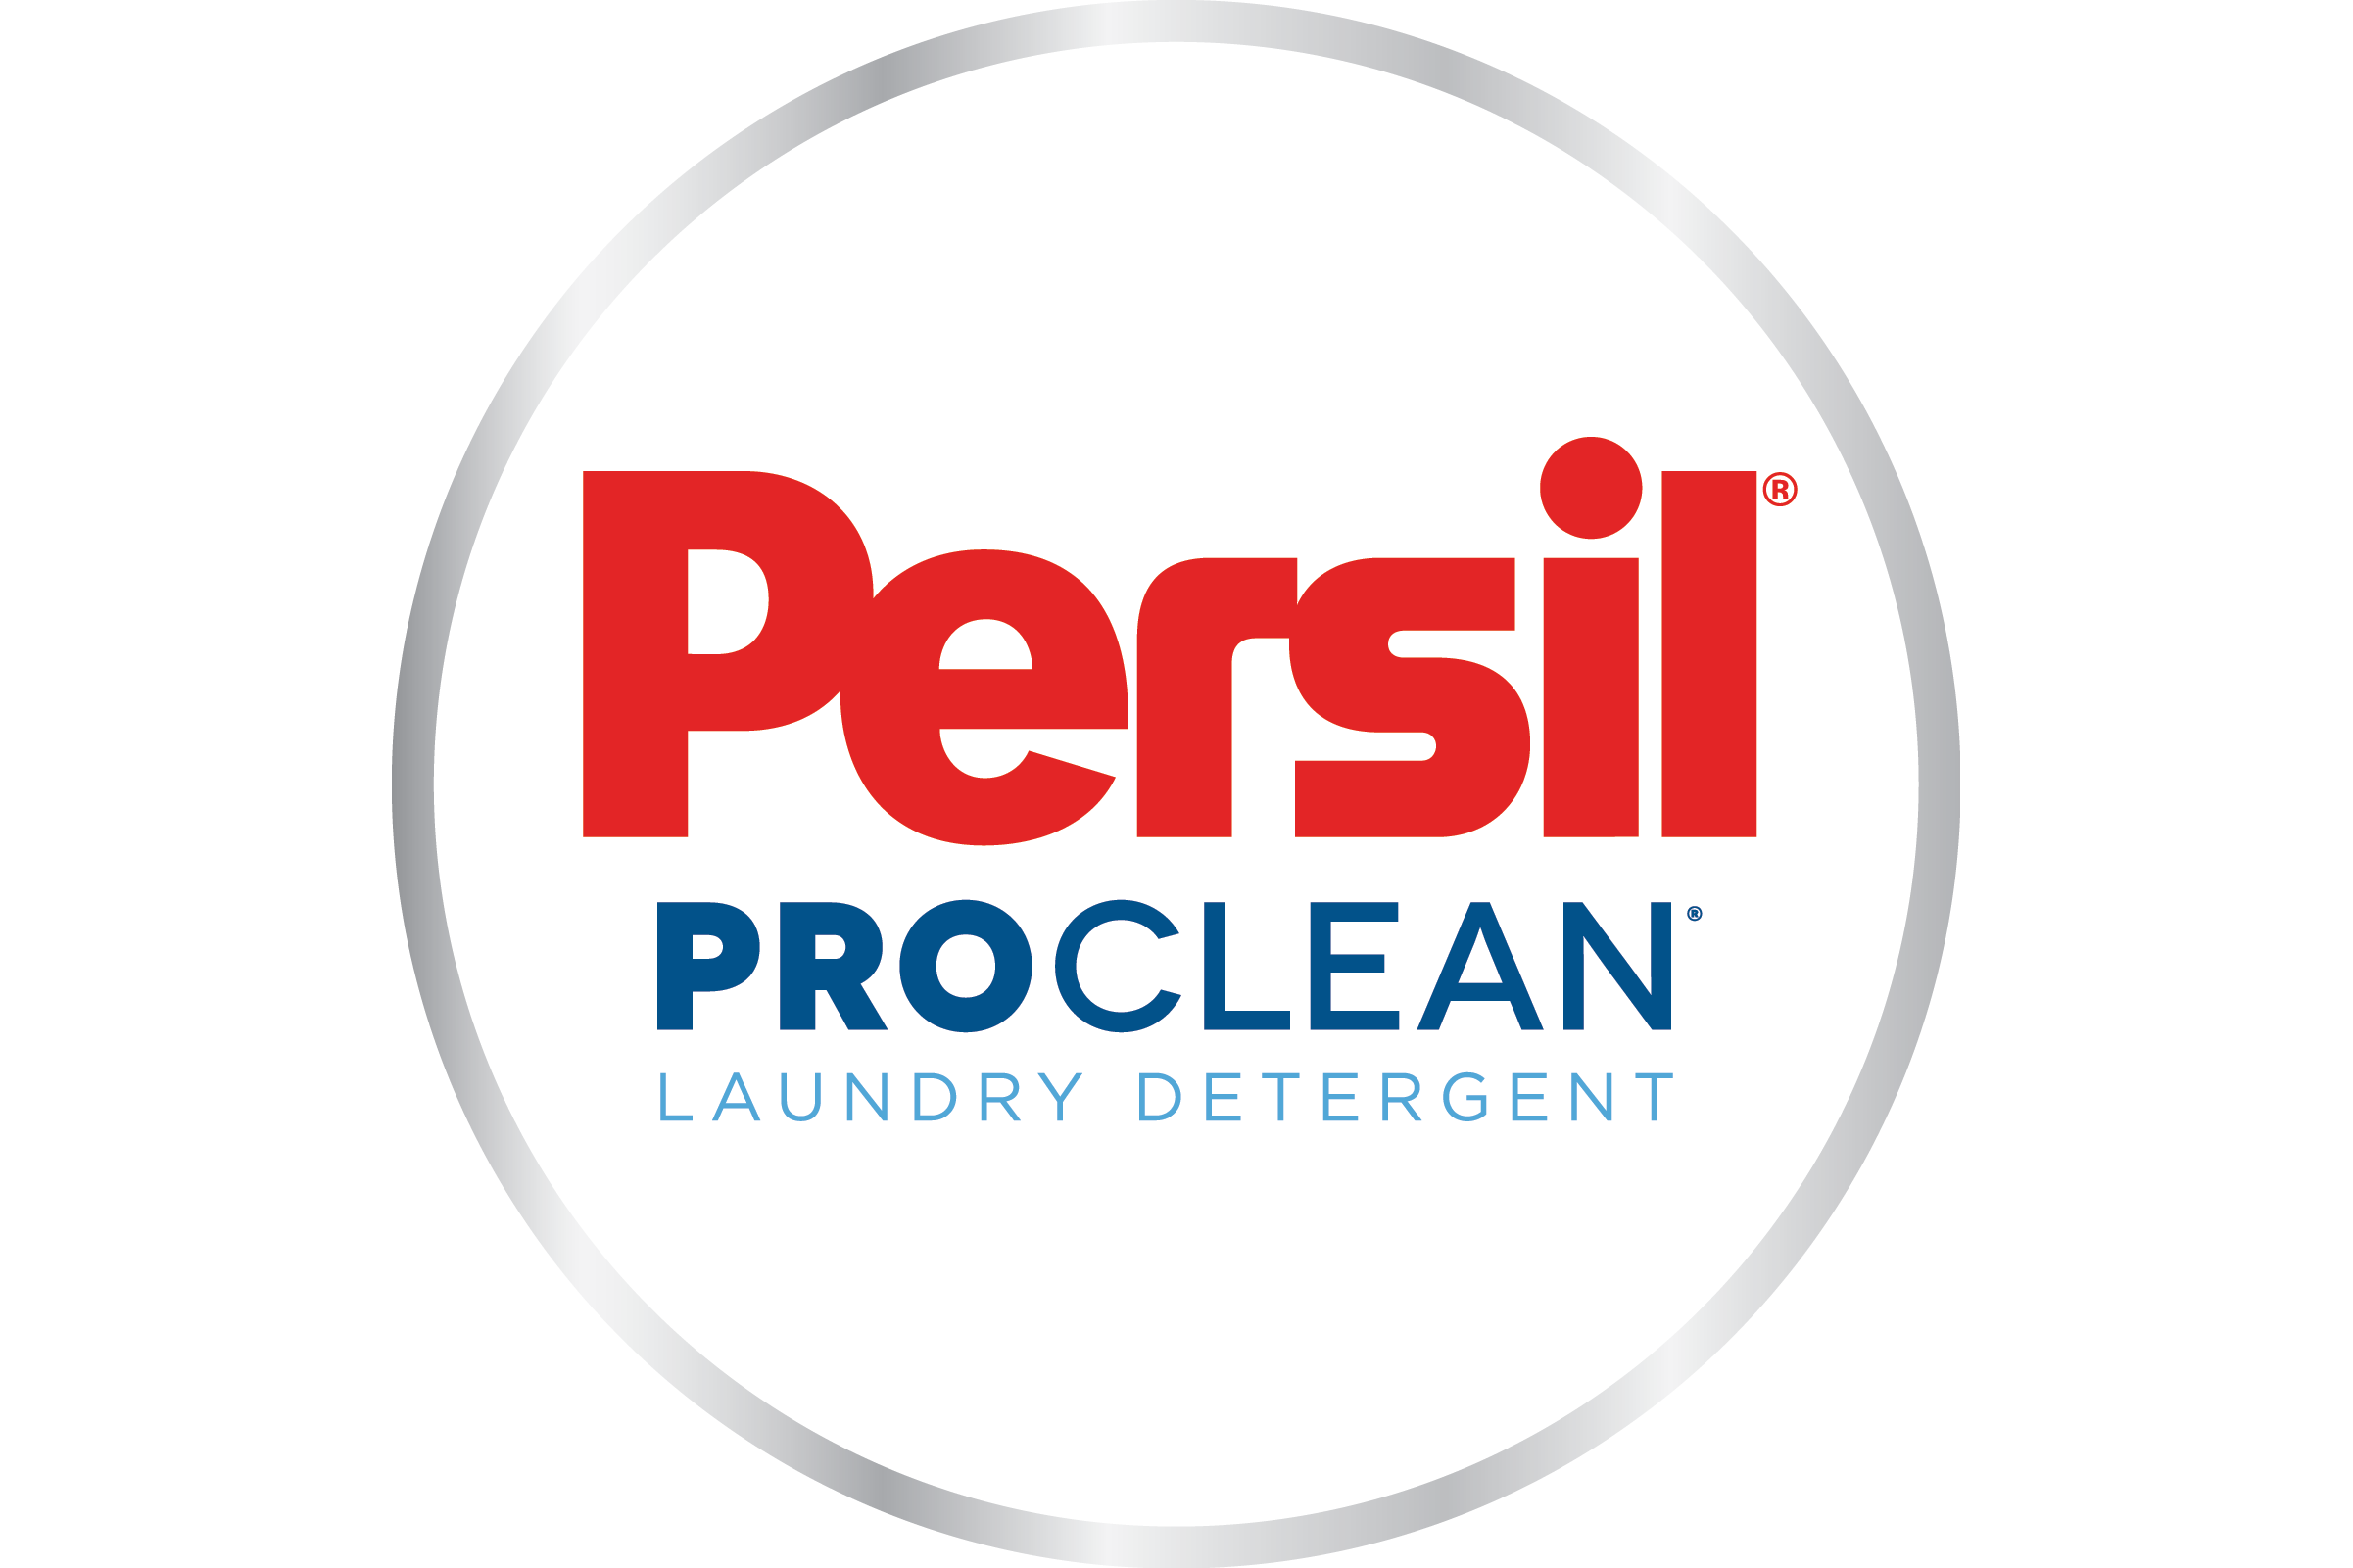 Premium laundry detergent brand Persil ProClean returns for TV during Super Bowl LIII®